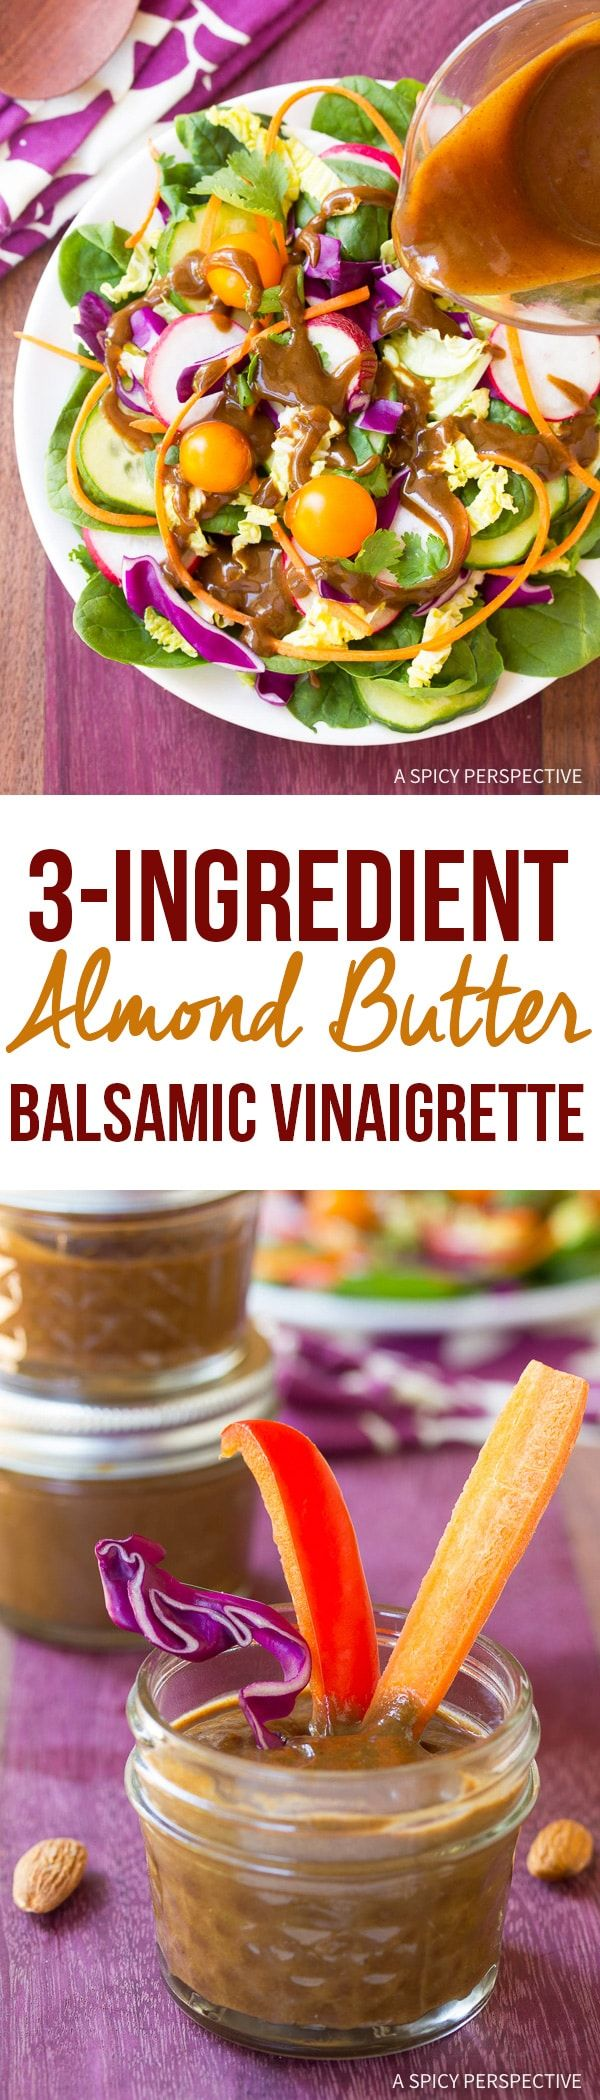 Healthy 3-Ingredient Almond Butter Balsamic Vinaigrette Recipe - Gluten Free and Dairy Free! via @spicyperspectiv